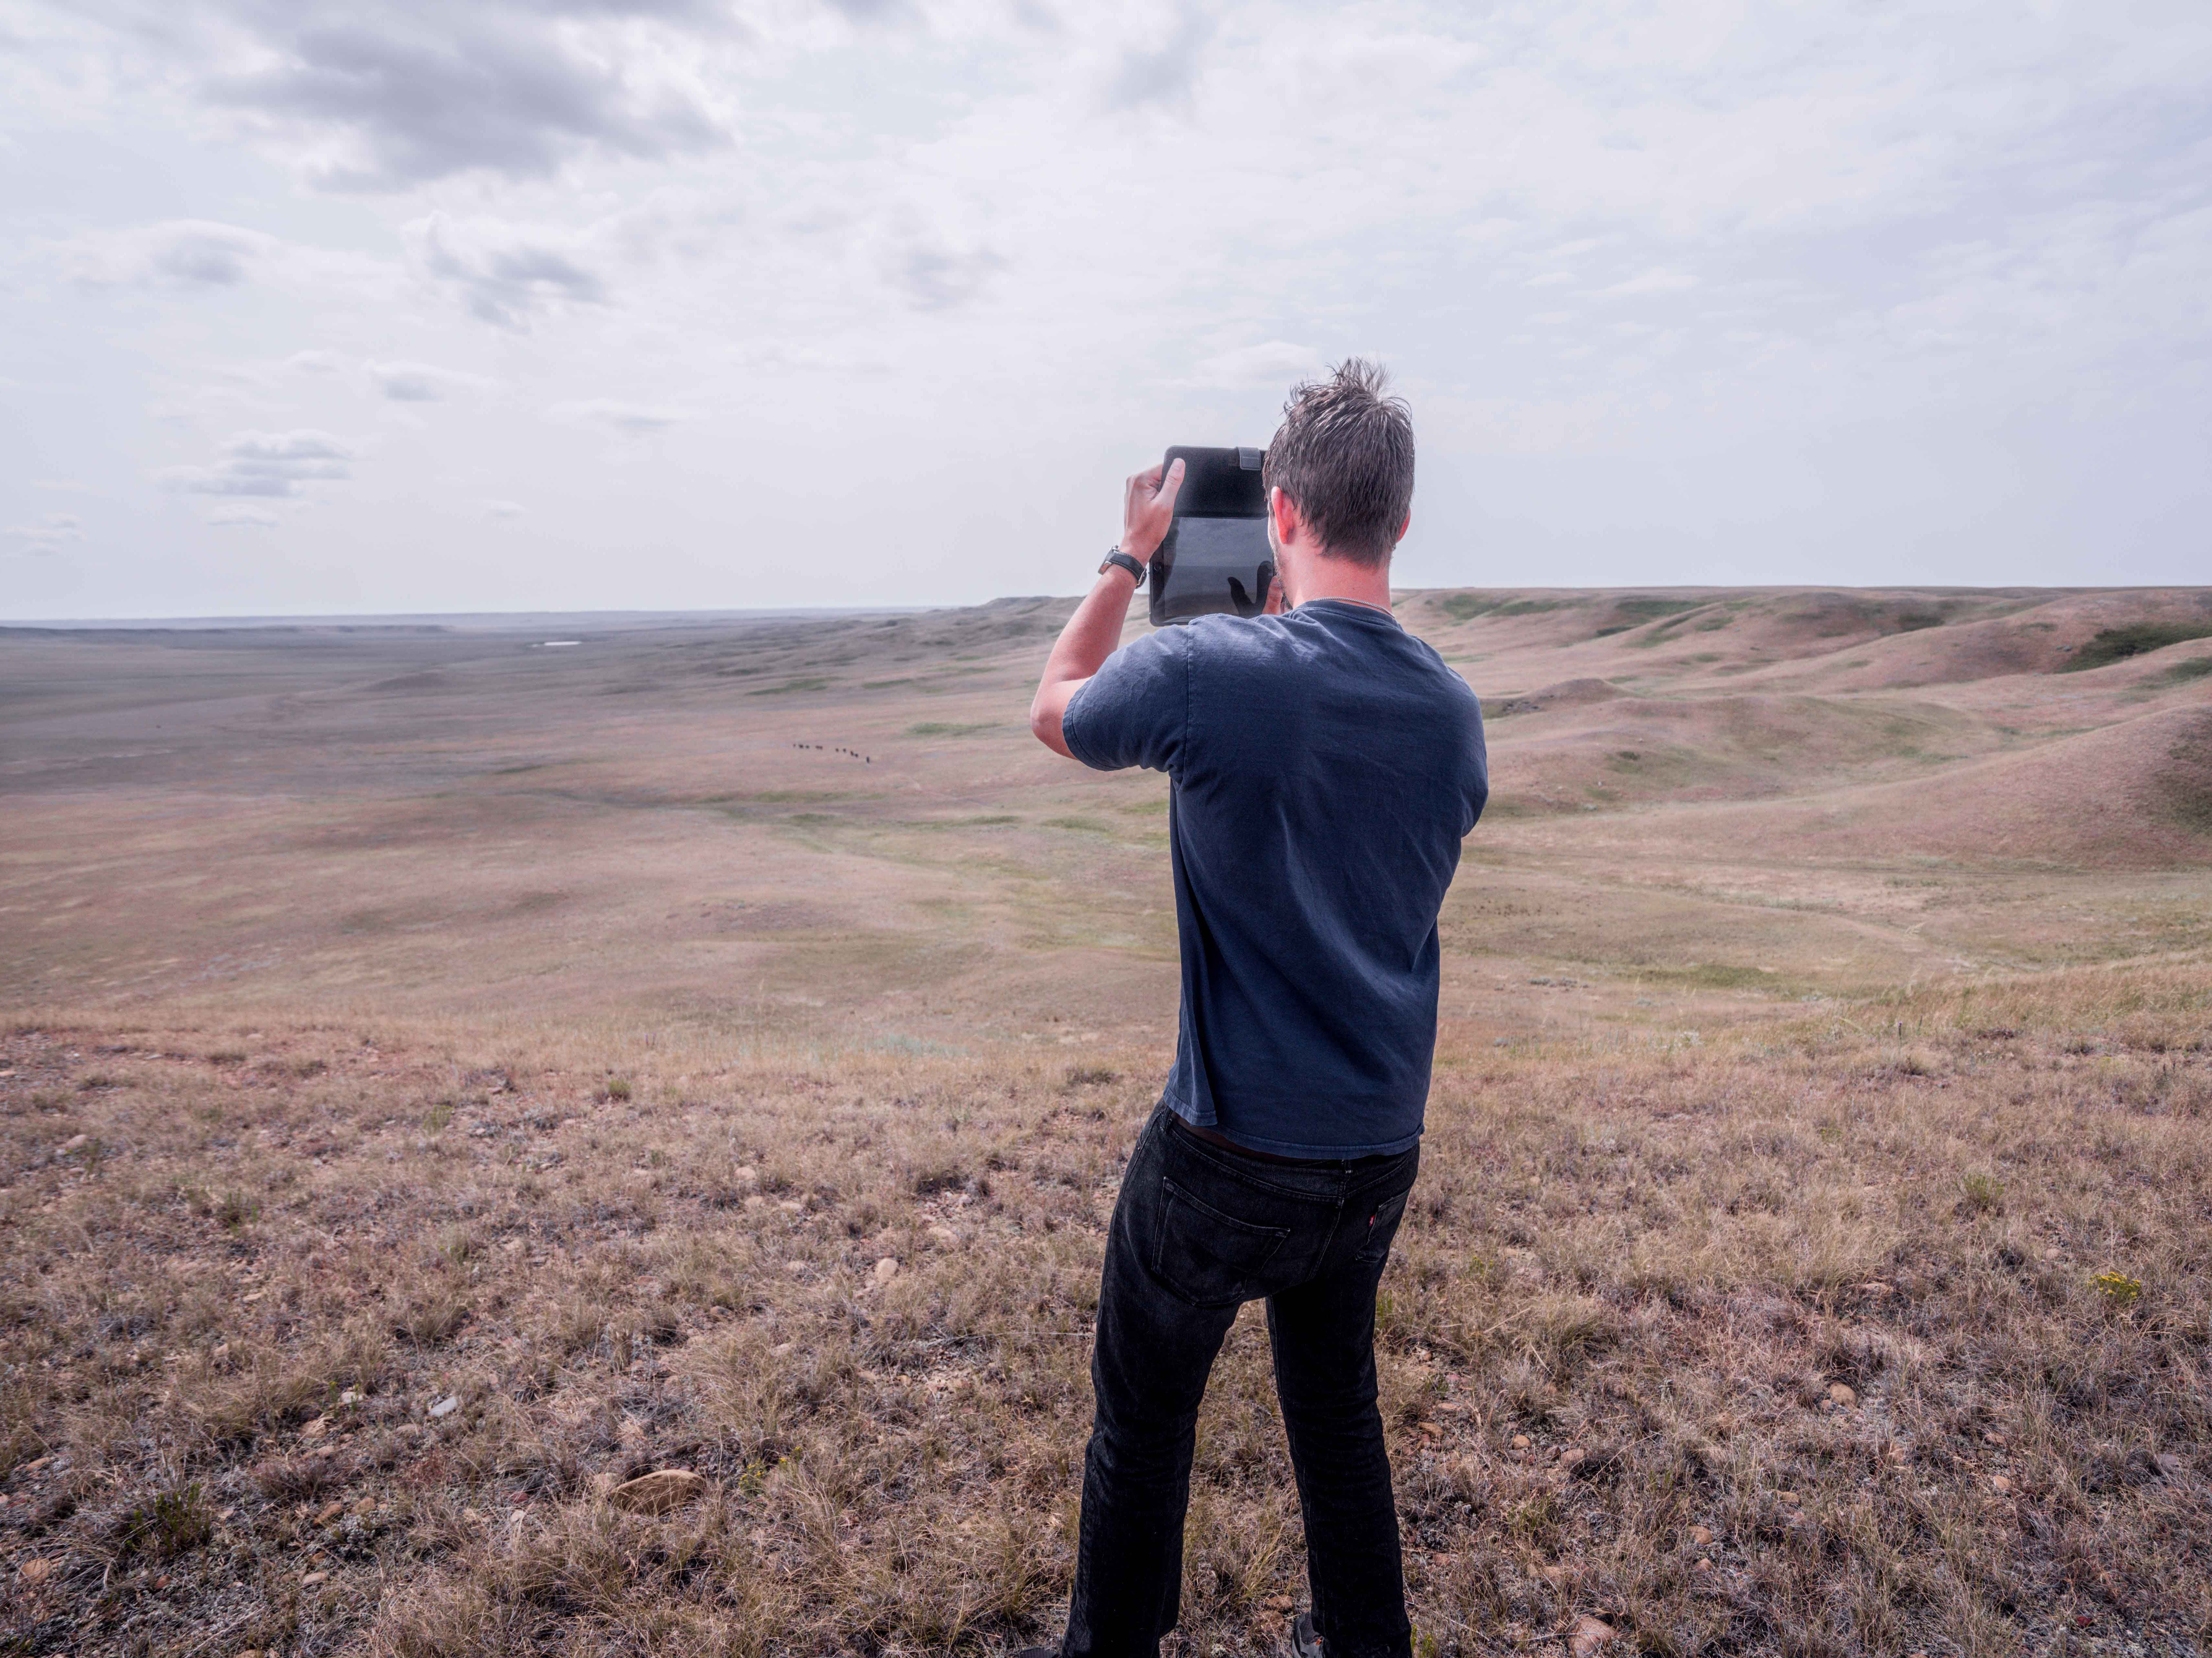 A.J. Etherington of Glasgow takes photos of a remote stretch of Montana west of Larslan.